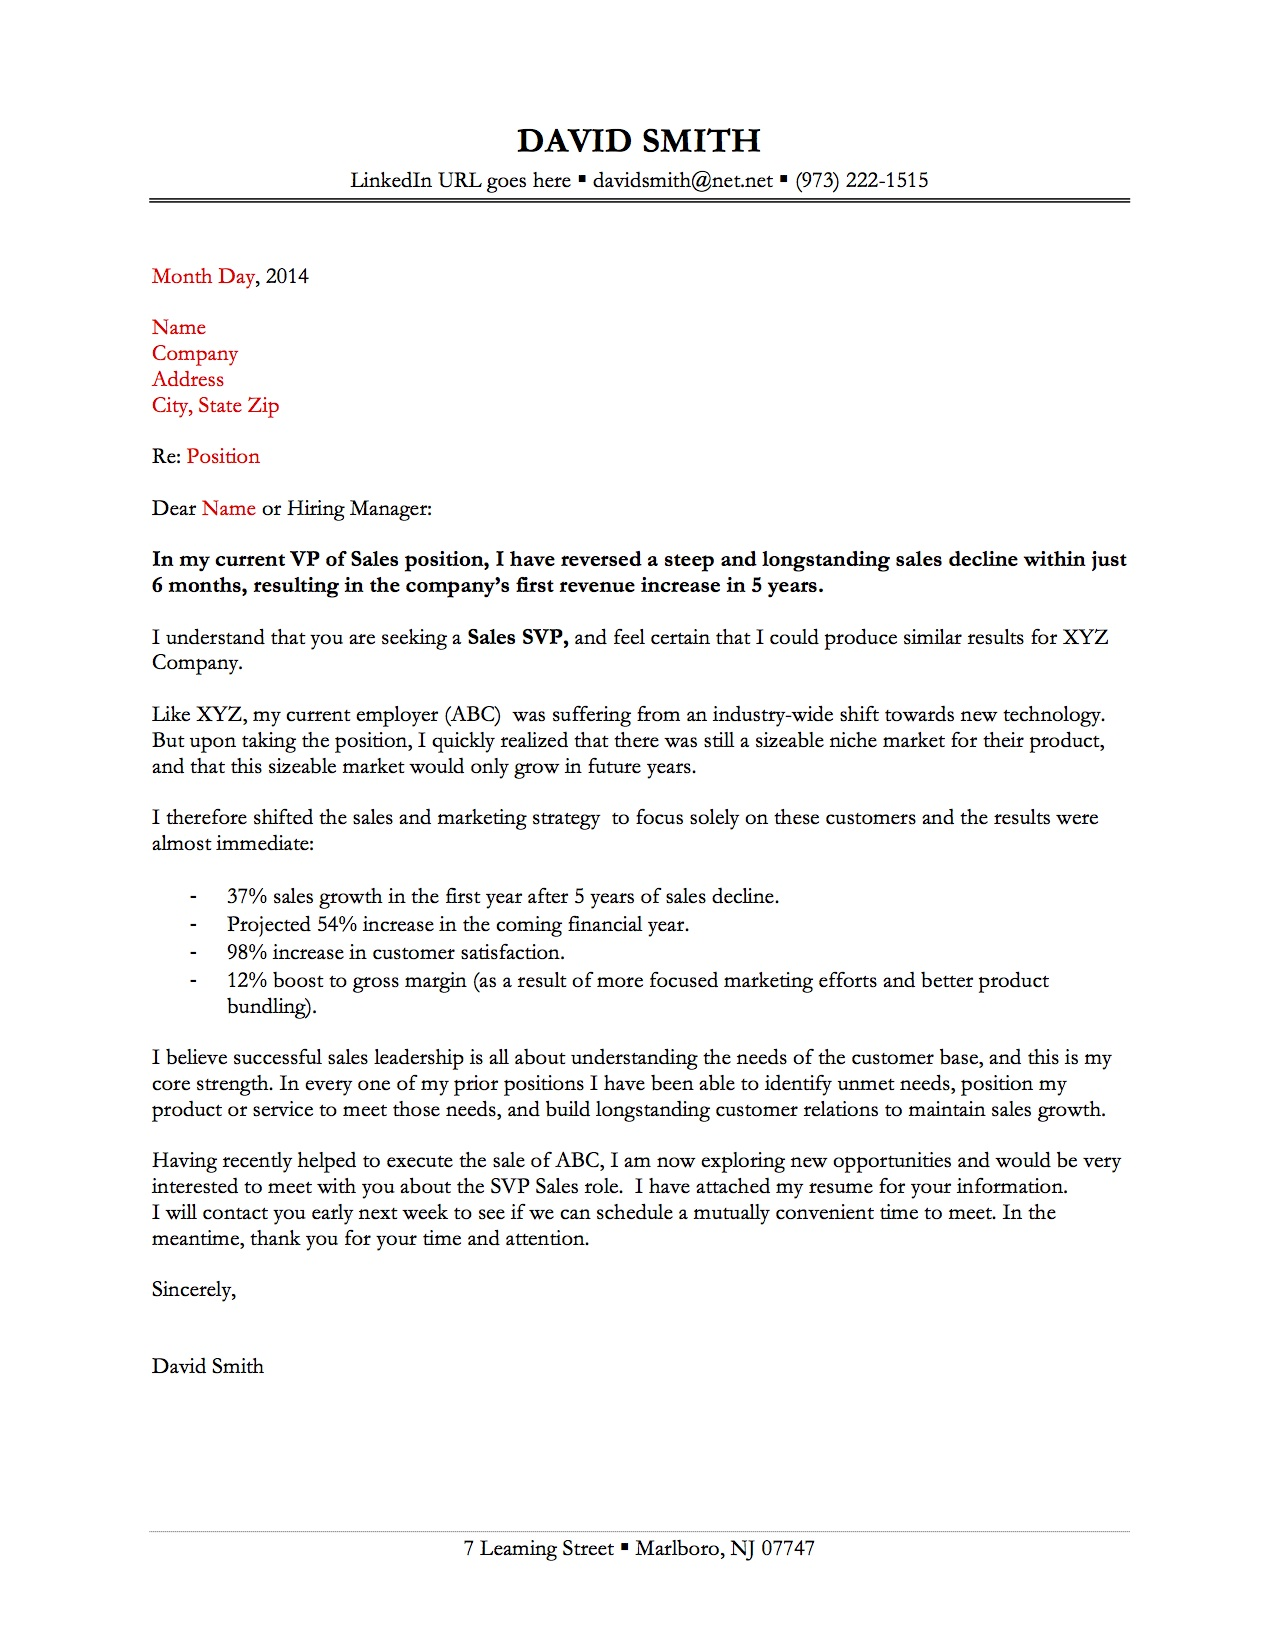 sample cover letter 2 - Fantastic Cover Letter Examples